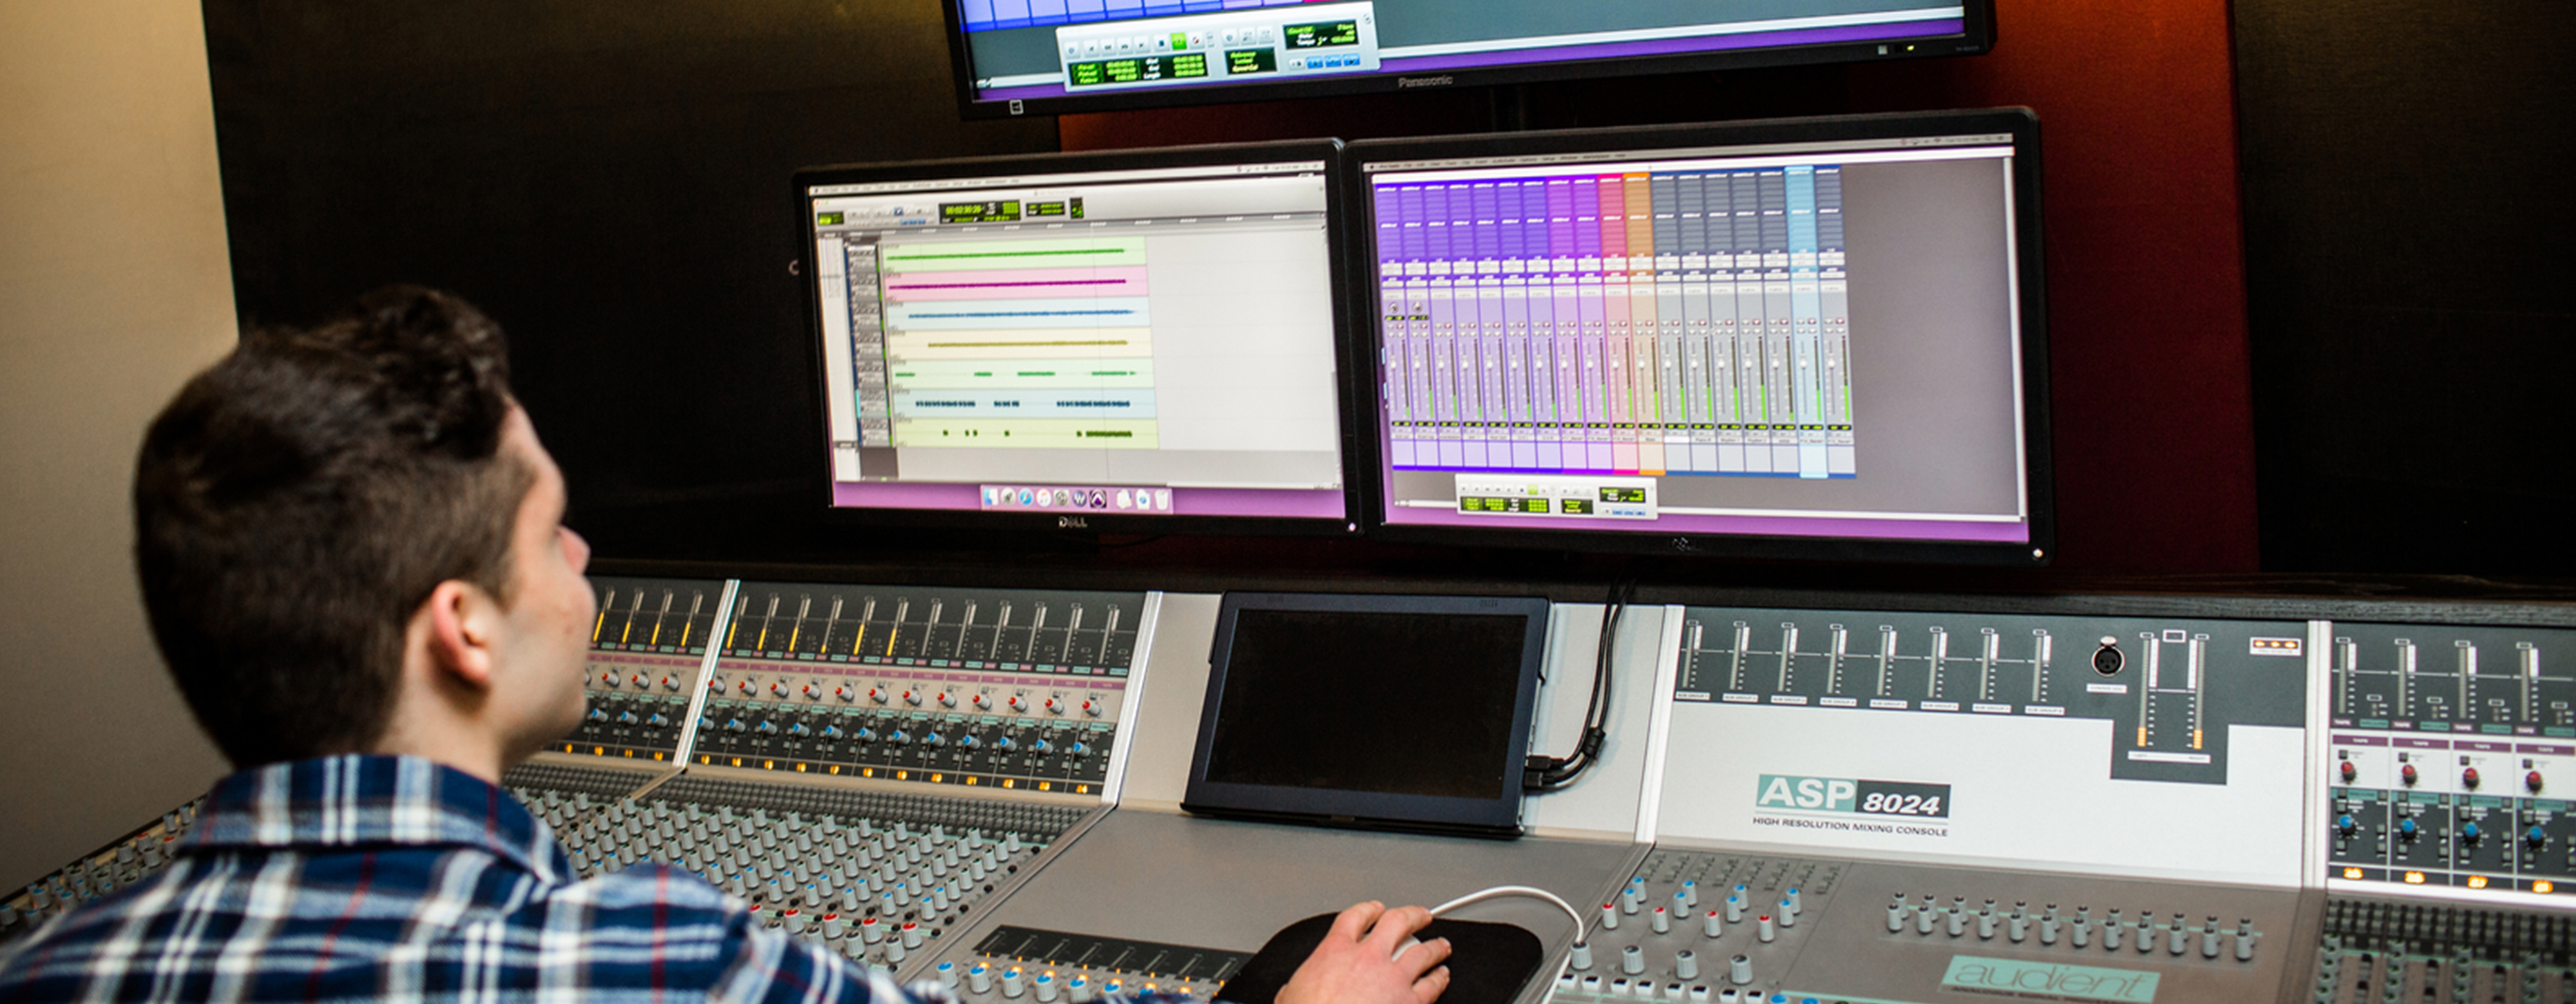 MWCC Media Arts & Technology Student at Sound Board